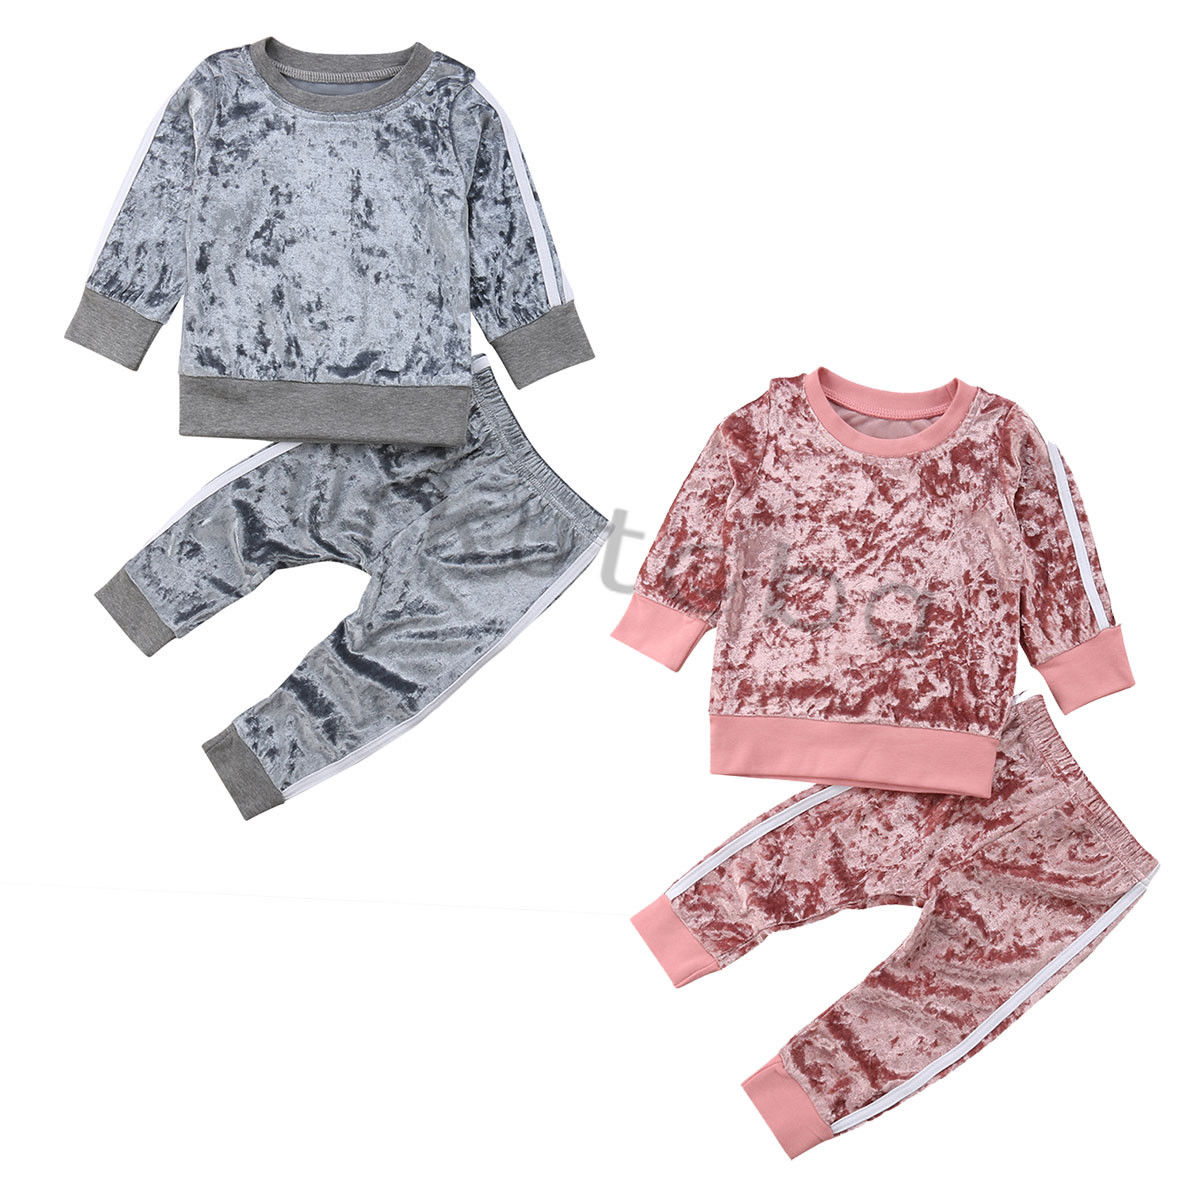 Casual Kids Velvet Clothes Sets Infant Baby Boy Girl Long Sleeve Sweatshirts Striped Suit Autumn Spring 2pcs Fashion Outfits Set adyce 2018 new fashion spring women sets striped top